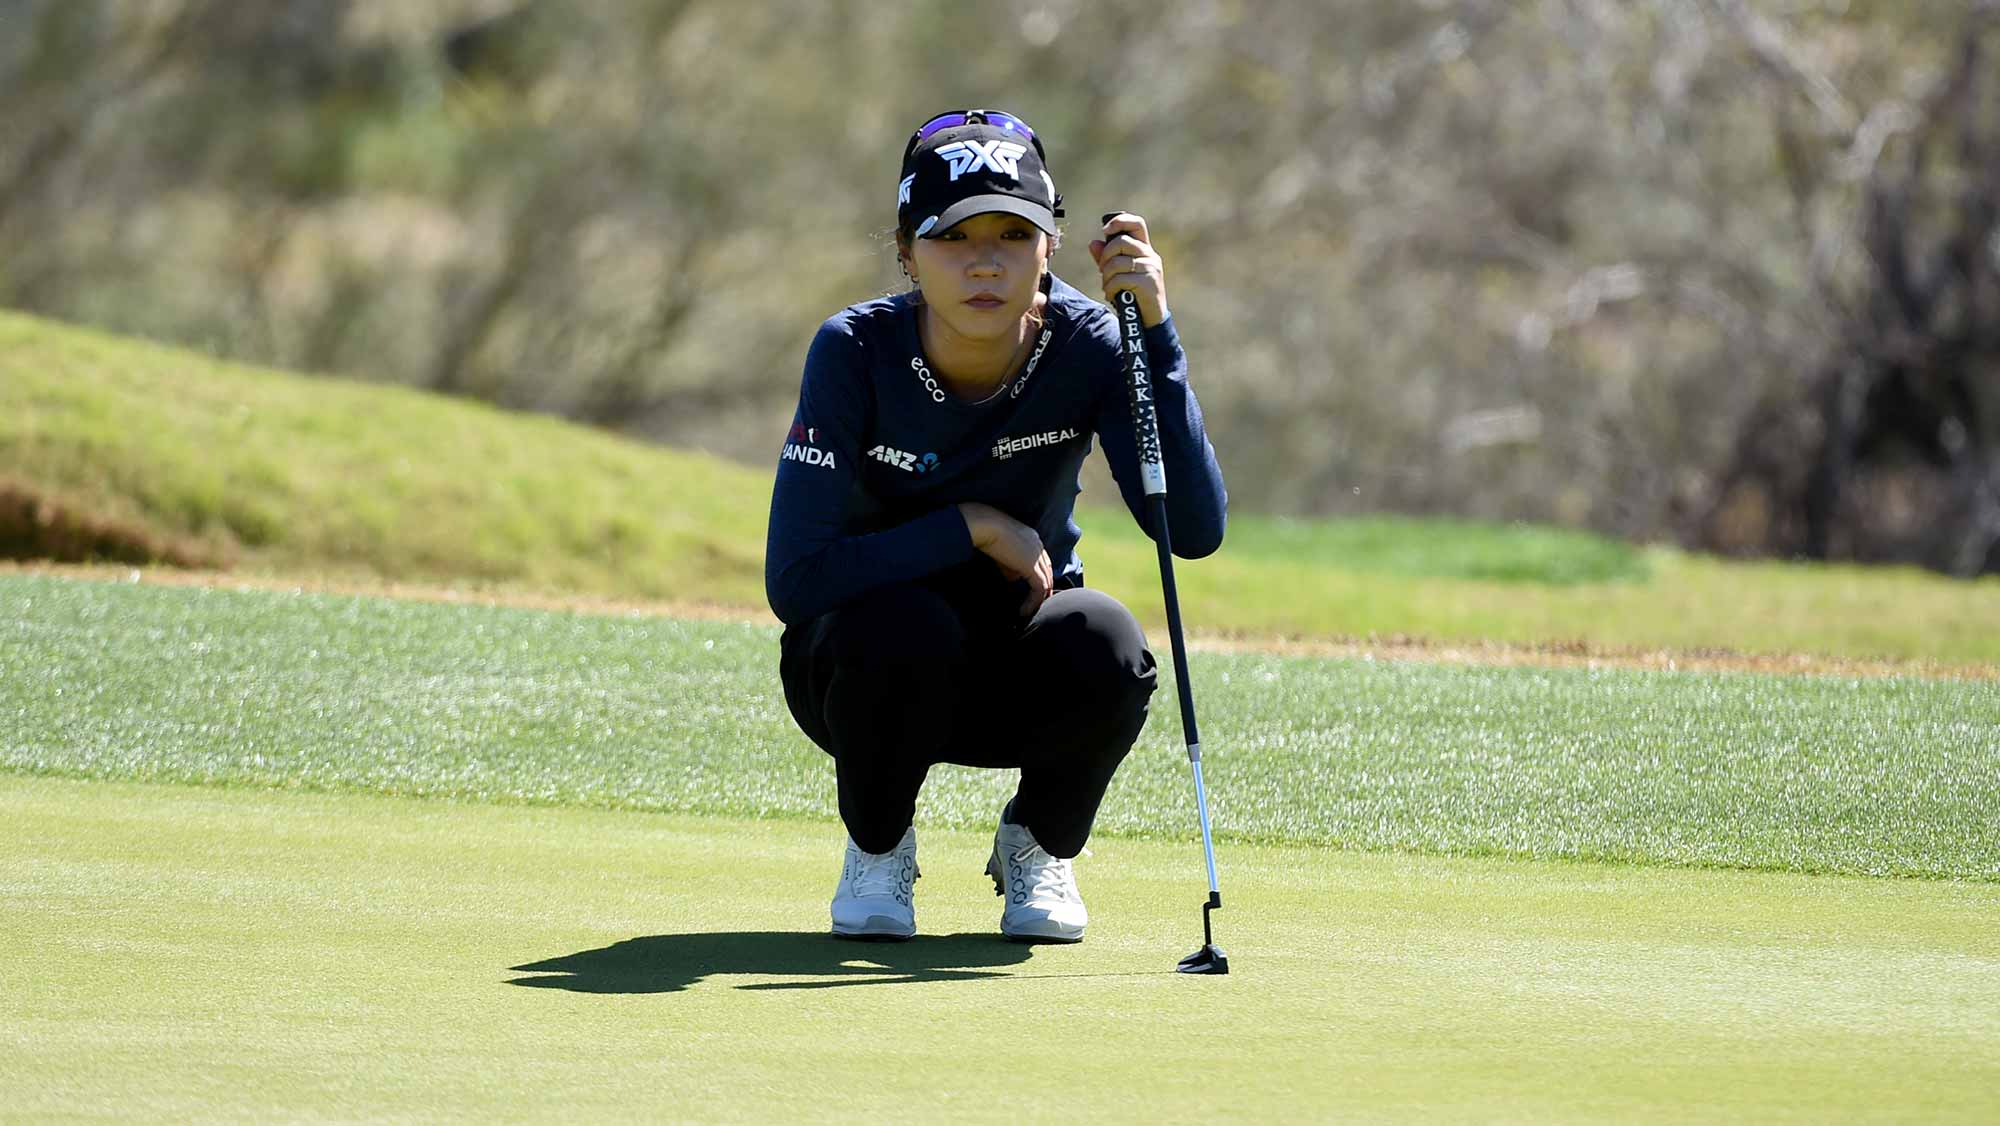 Lydia Ko of New Zealand lines up a putt on the third hole during the second round of the Bank Of Hope Founders Cup at the Wildfire Golf Club on March 22, 2019 in Phoenix, Arizona